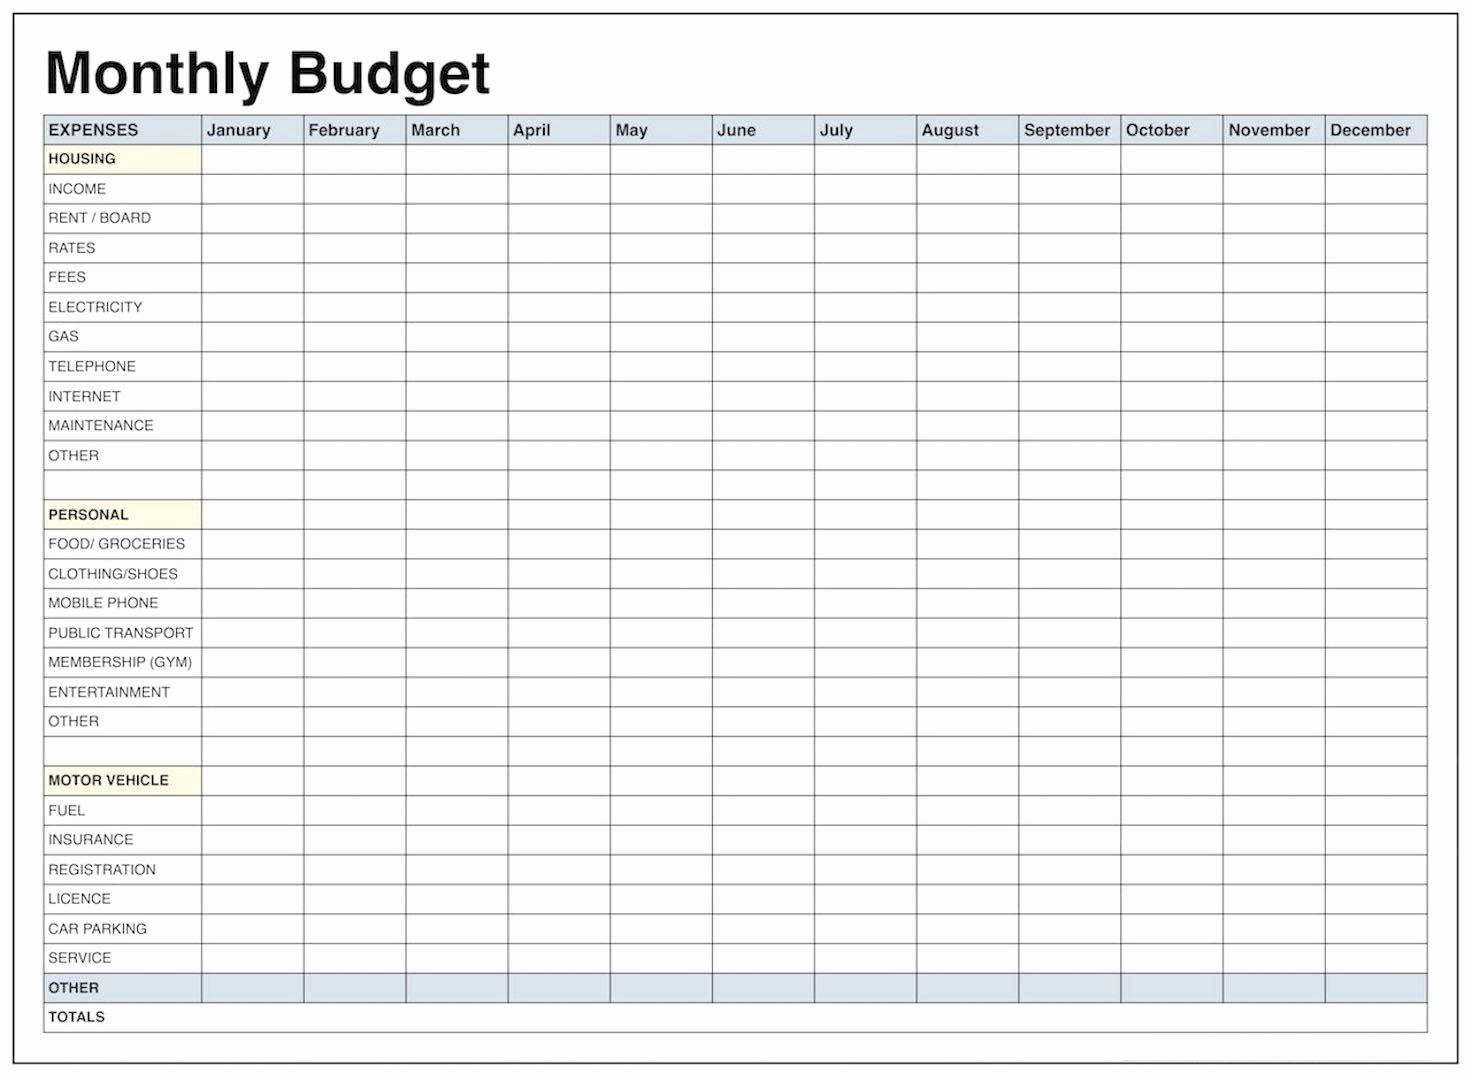 Monthly Budget Worksheet Printable Luxury Blank Monthly Bud Template Pdf